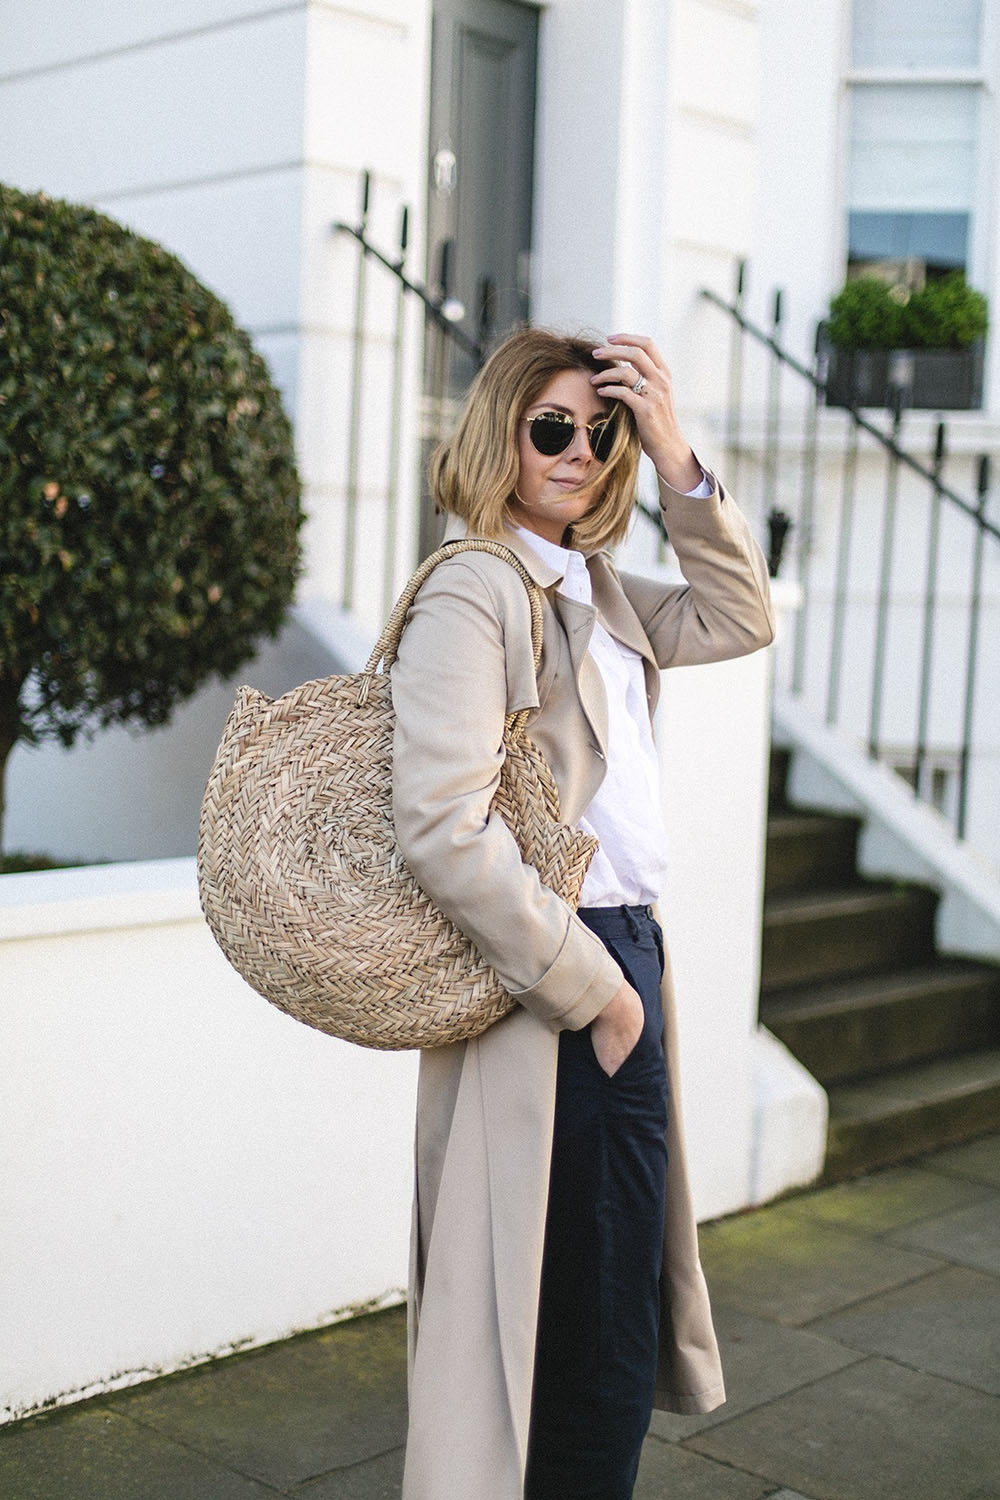 Emma-Hill-style-round-basket-bag-trench-coat-spring-wardrobe-staples-white-linen-shirt-navy-chinos